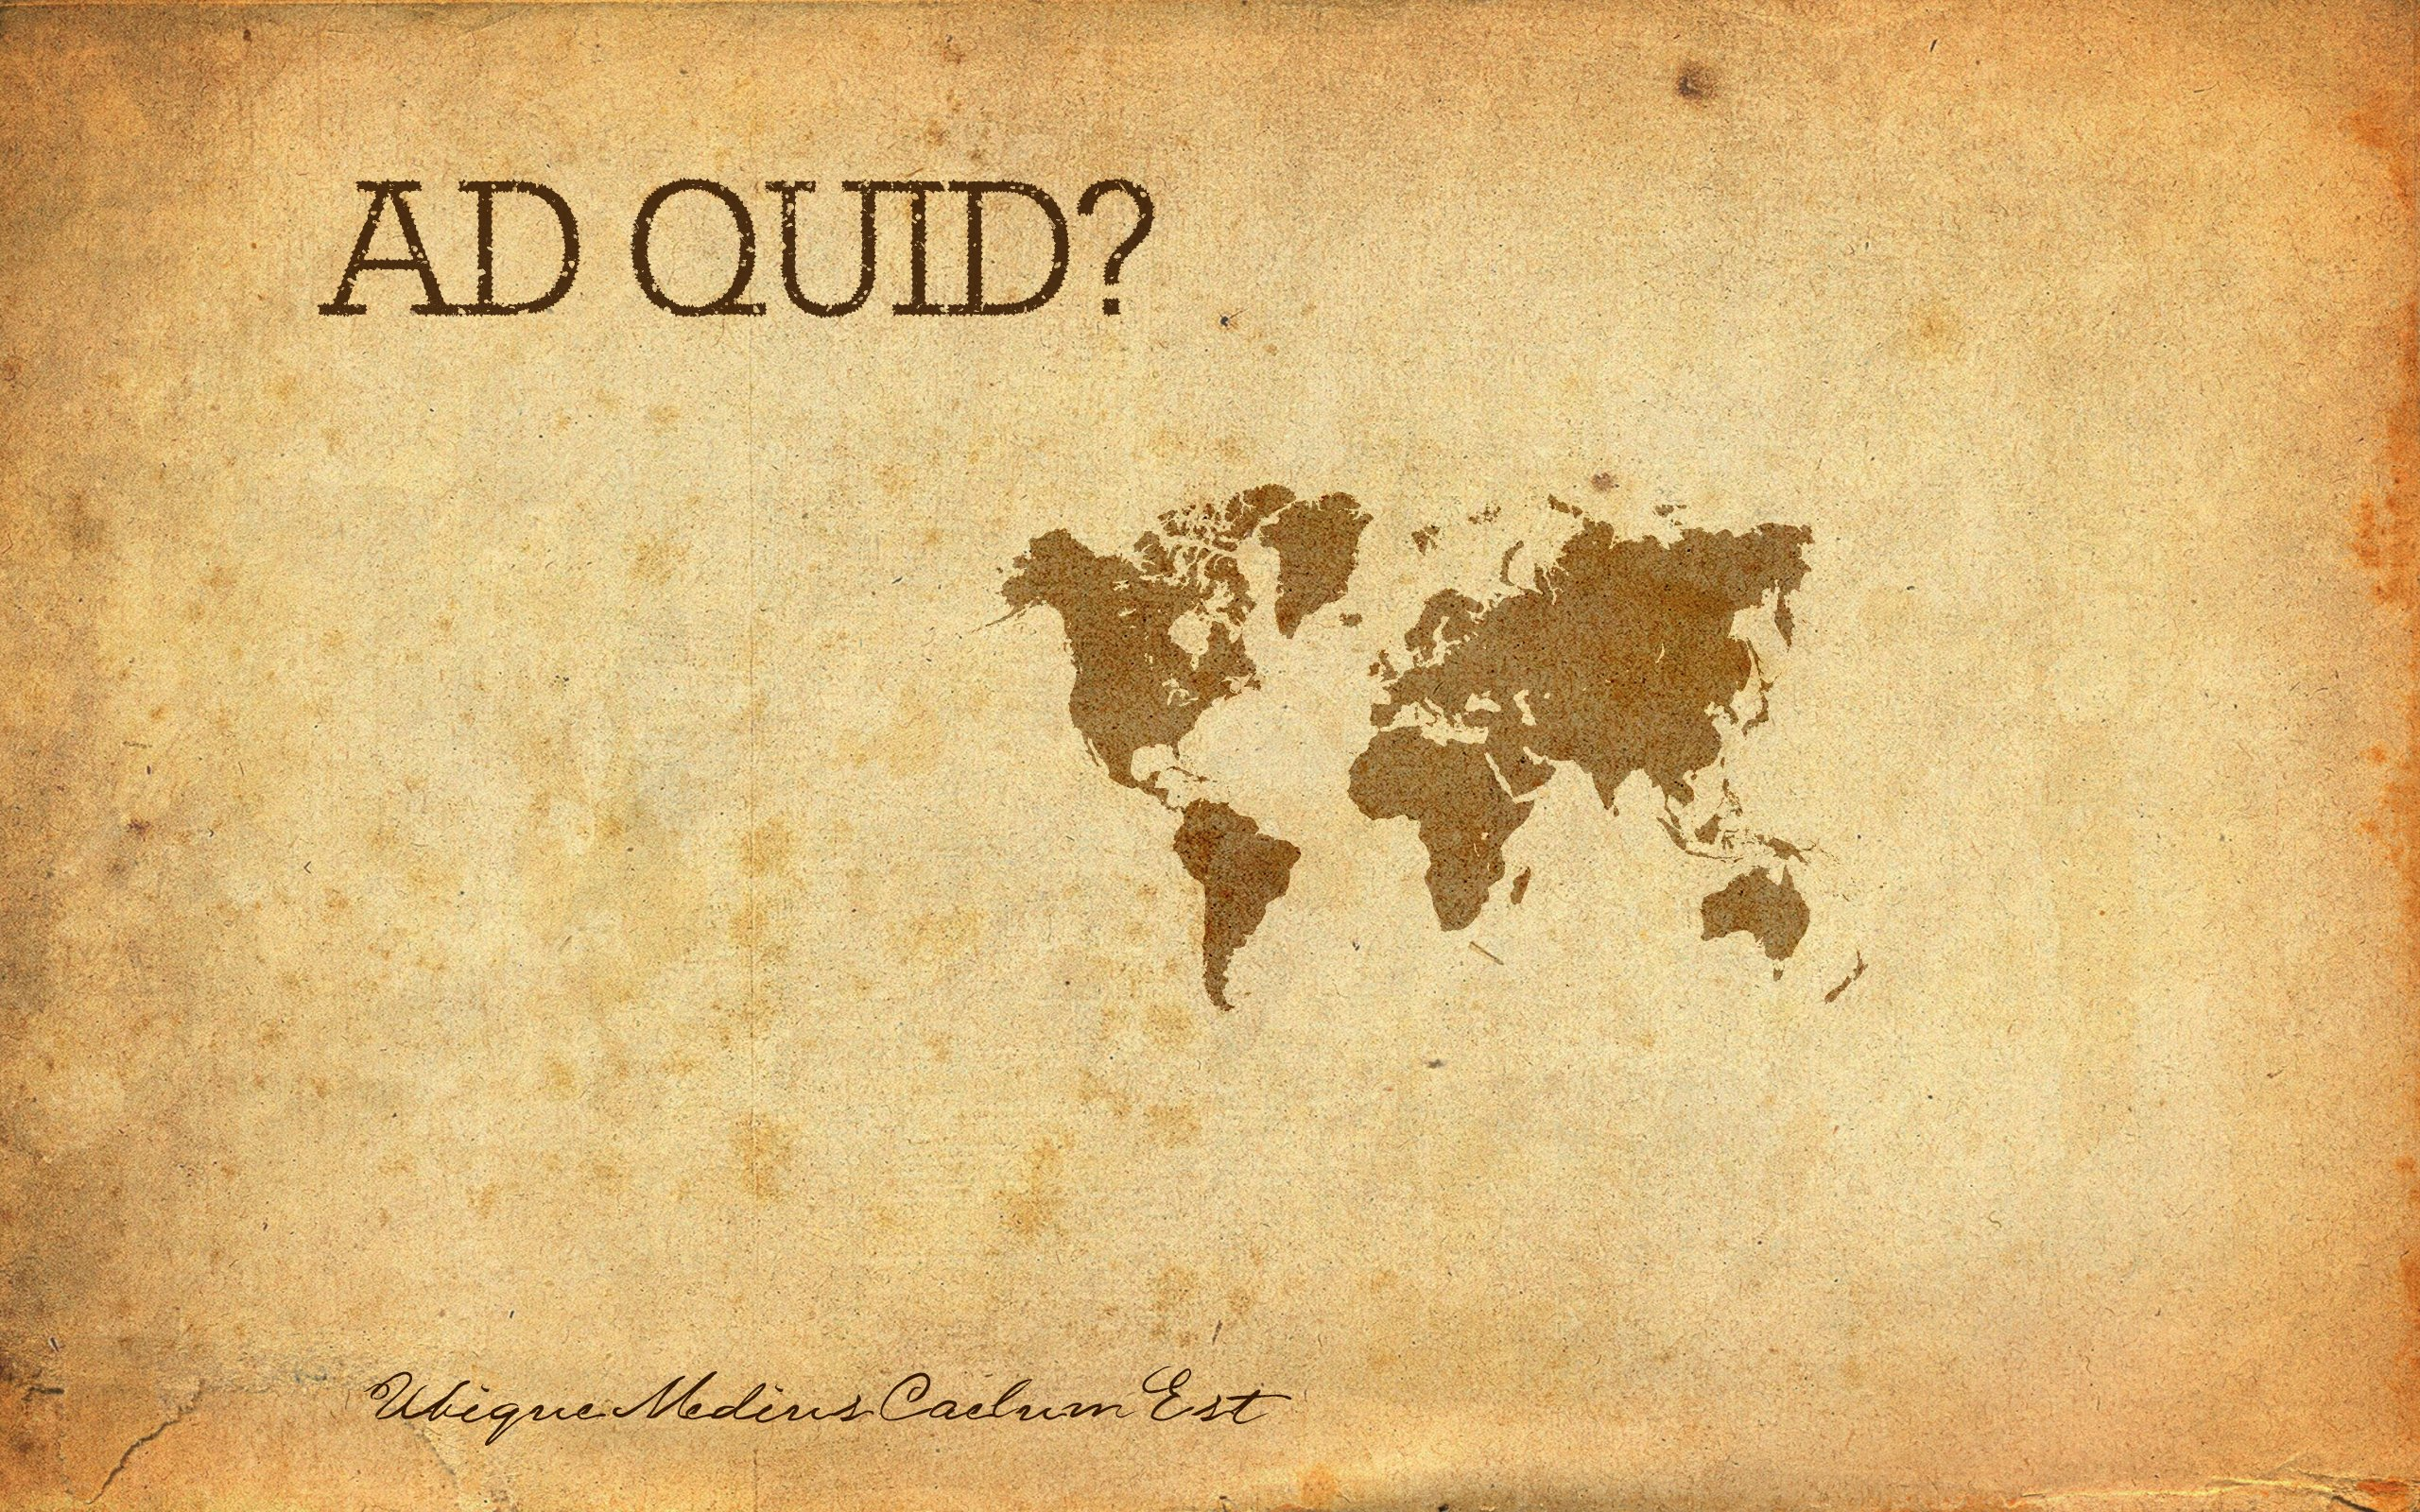 World map old latin quote wallpaper 2560x1600 591309 wallpaperup gumiabroncs Gallery